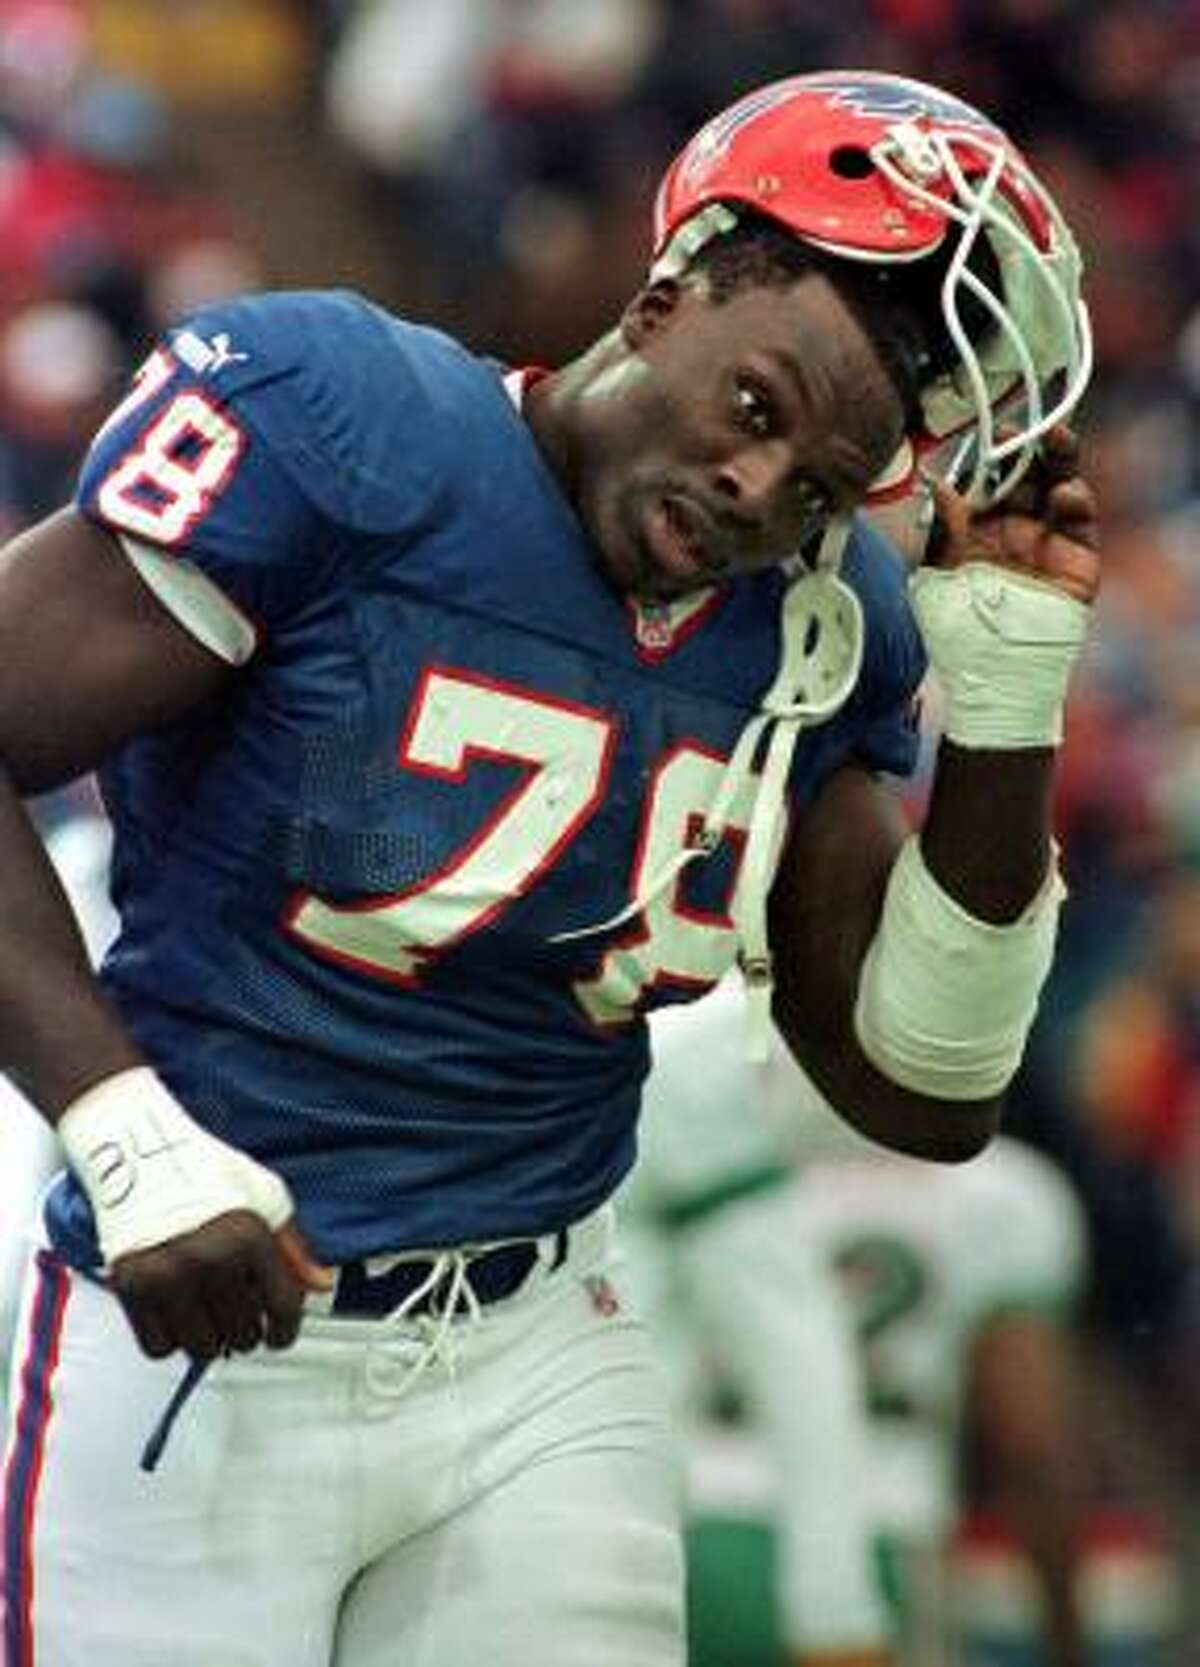 Bruce Smith - Defensive End - 1985-1999 Buffalo Bills, 2000-03 Washington Redskins. Smith was drafted No. 1 overall in 1985 and is the all-time sacks leader with 200.